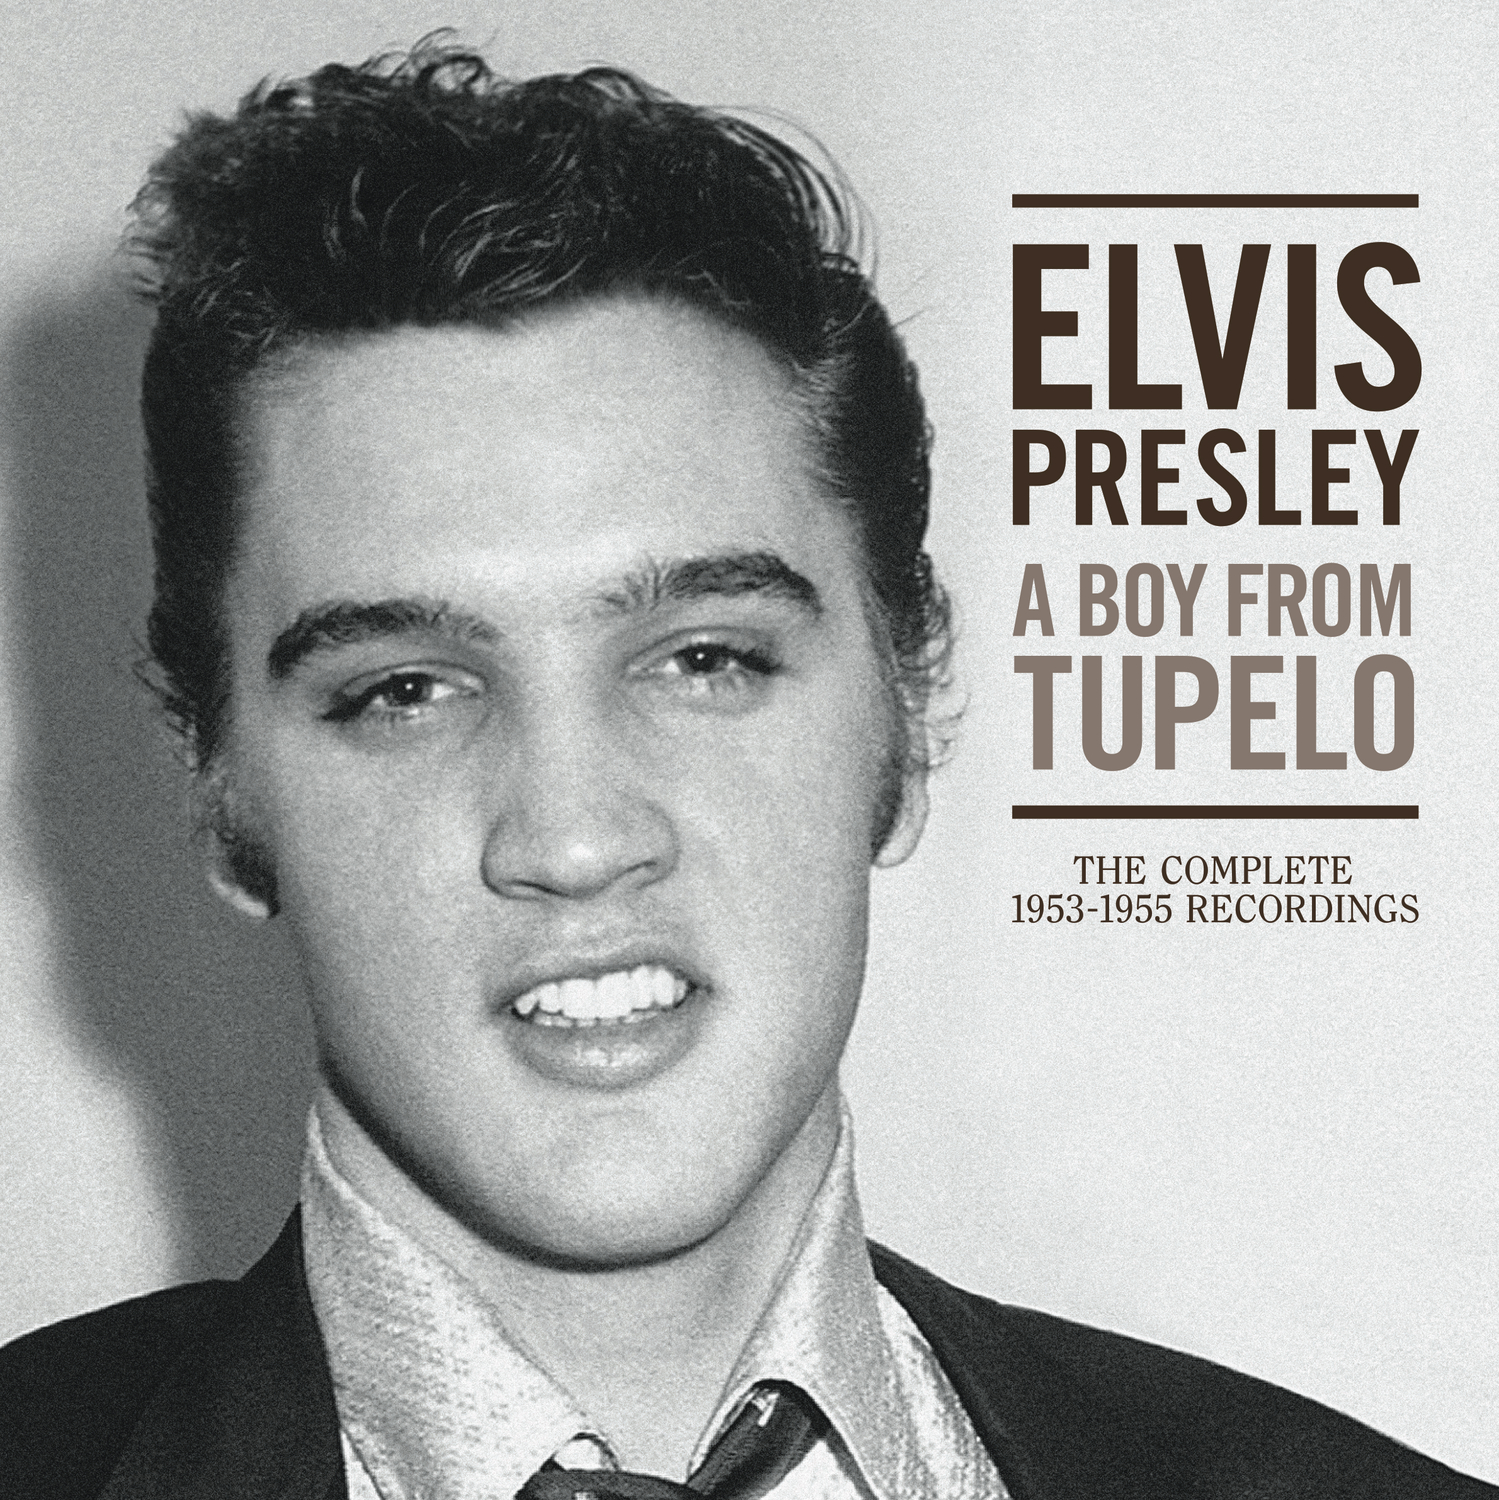 Esce il 28 Luglio Elvis Presley – A Boy From Tupelo: The Complete 1953-1955 Recordings